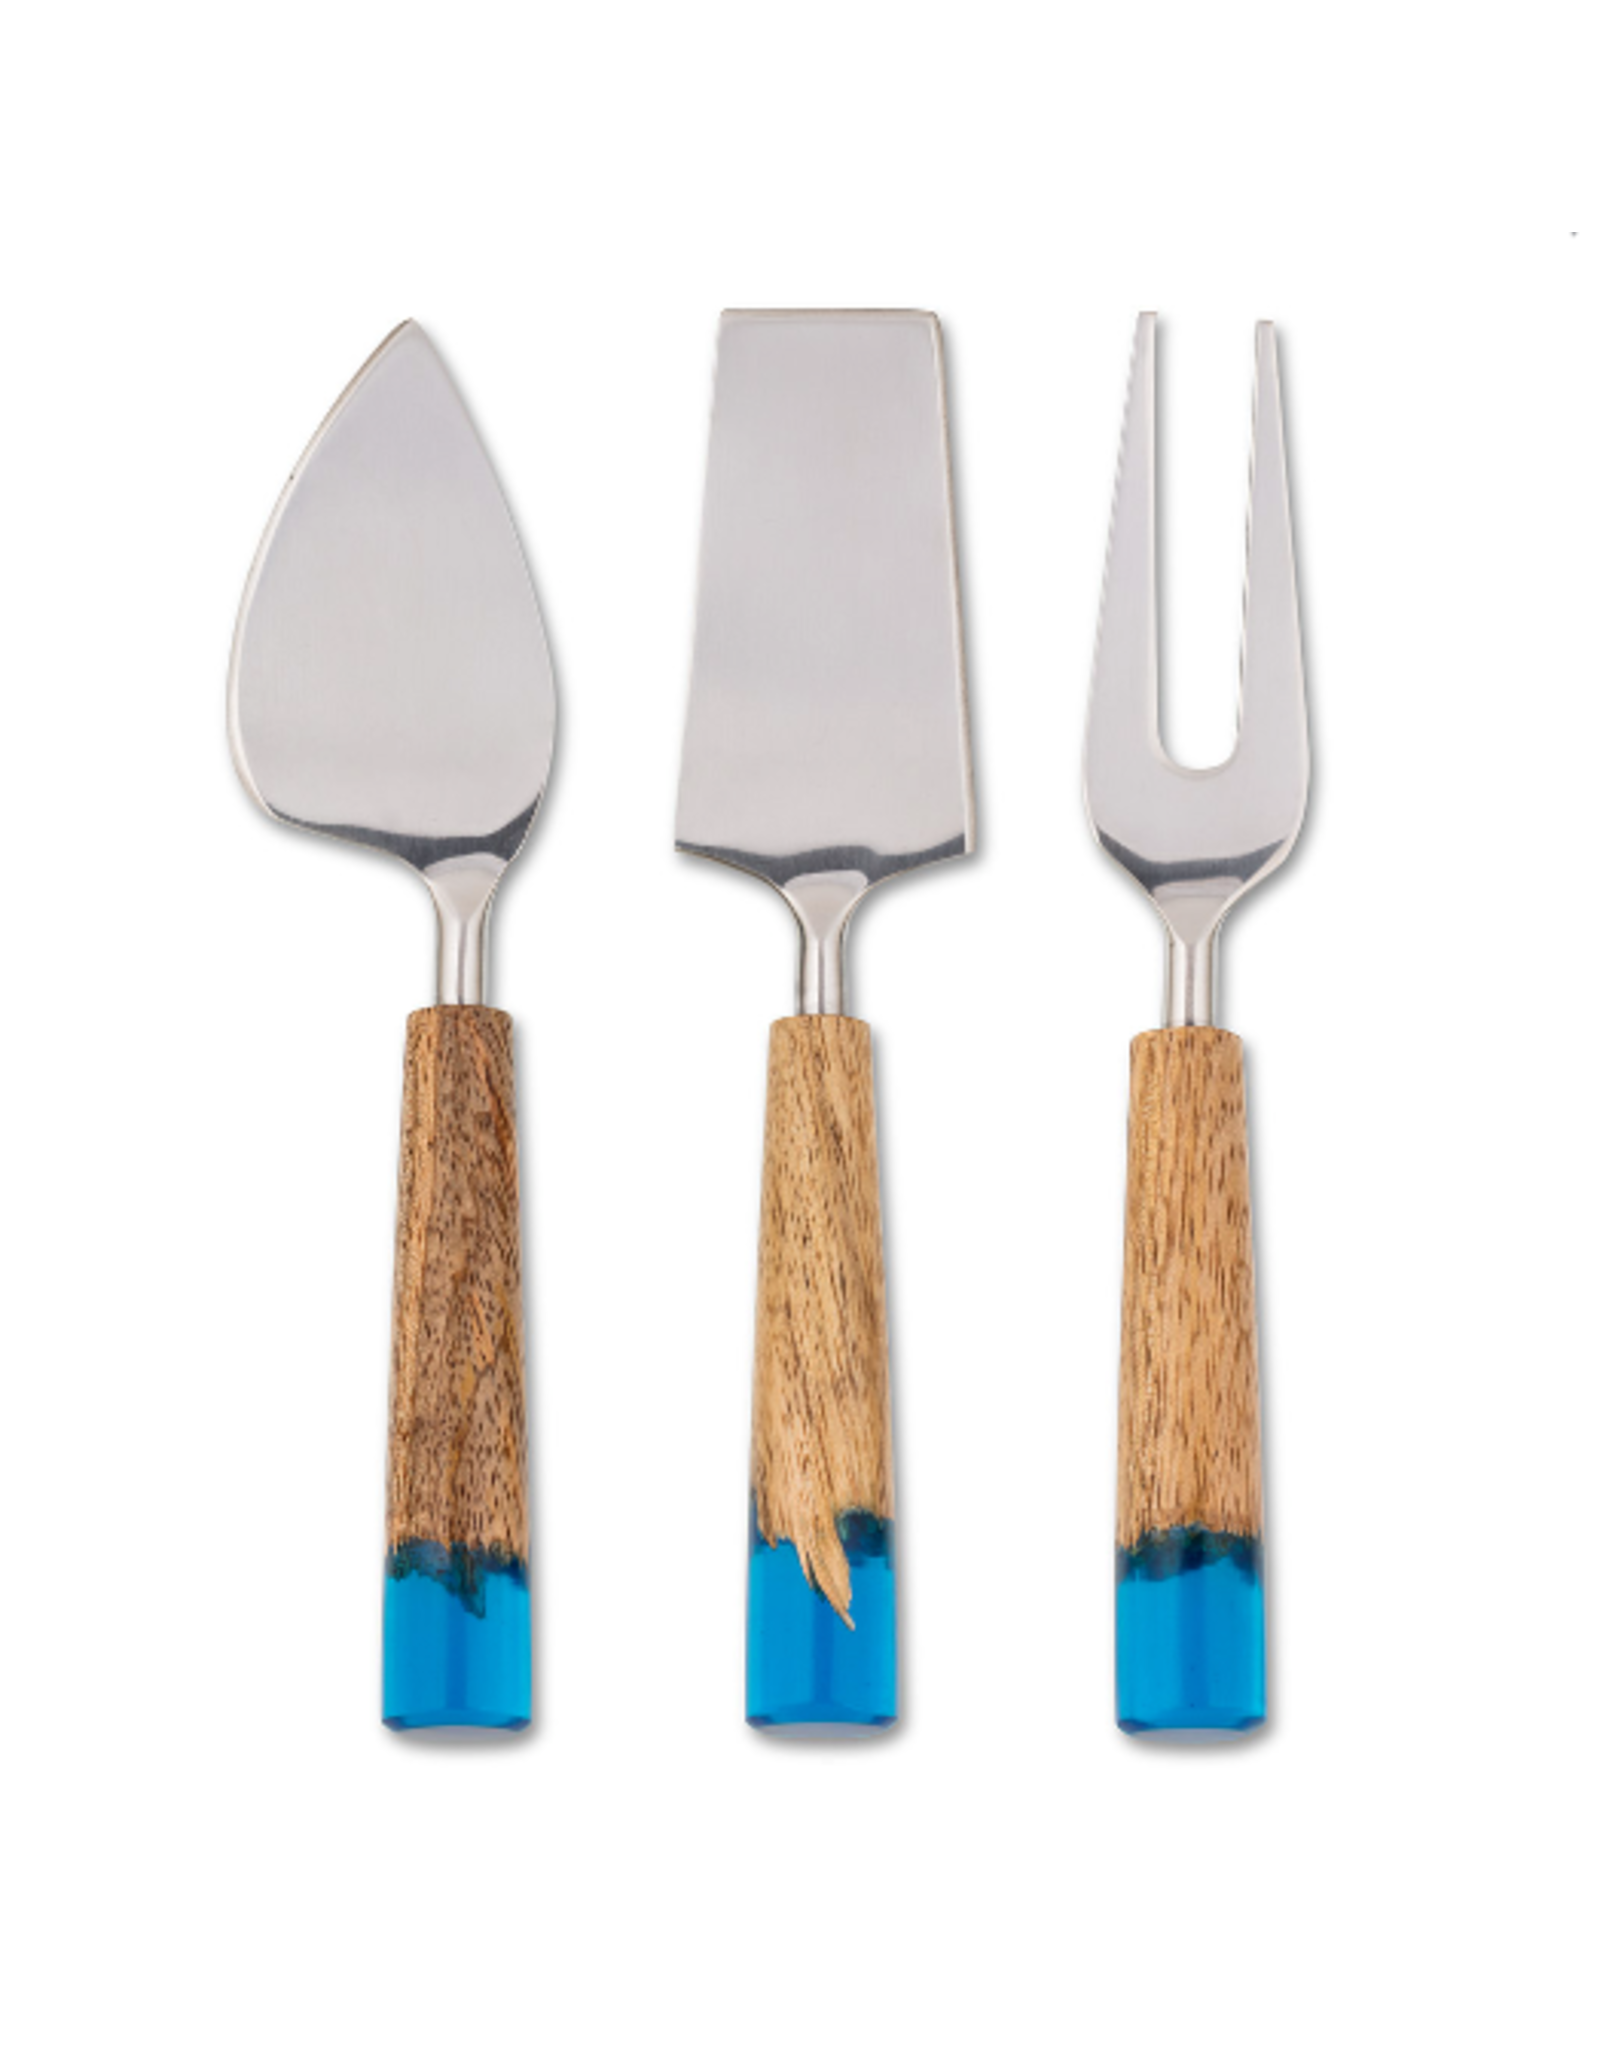 Abbott S/3 River Look Cheese Knives